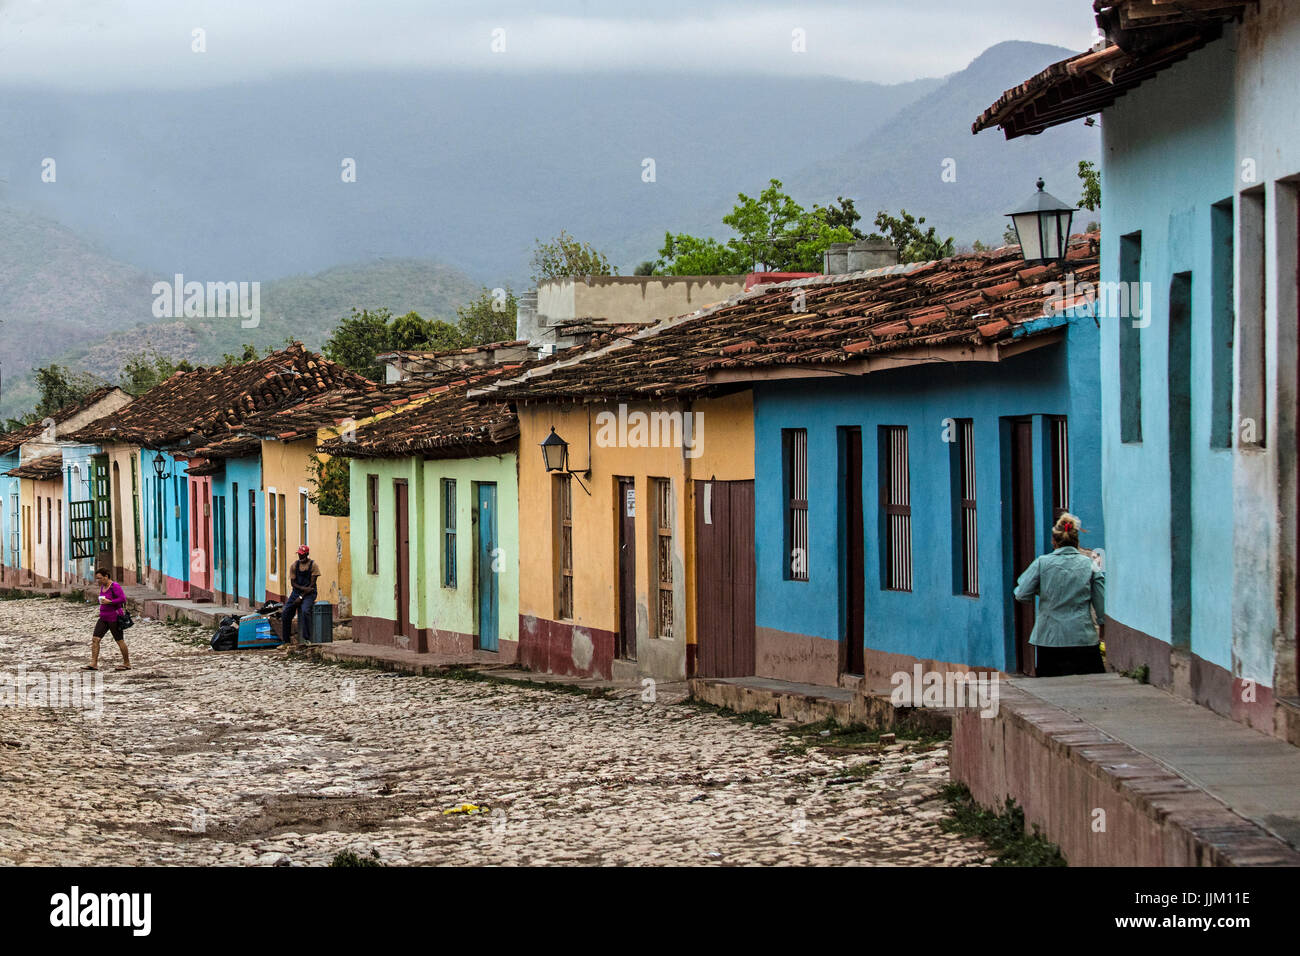 The cobble stone streets and colorful houses of TRINIDAD, CUBA - Stock Image